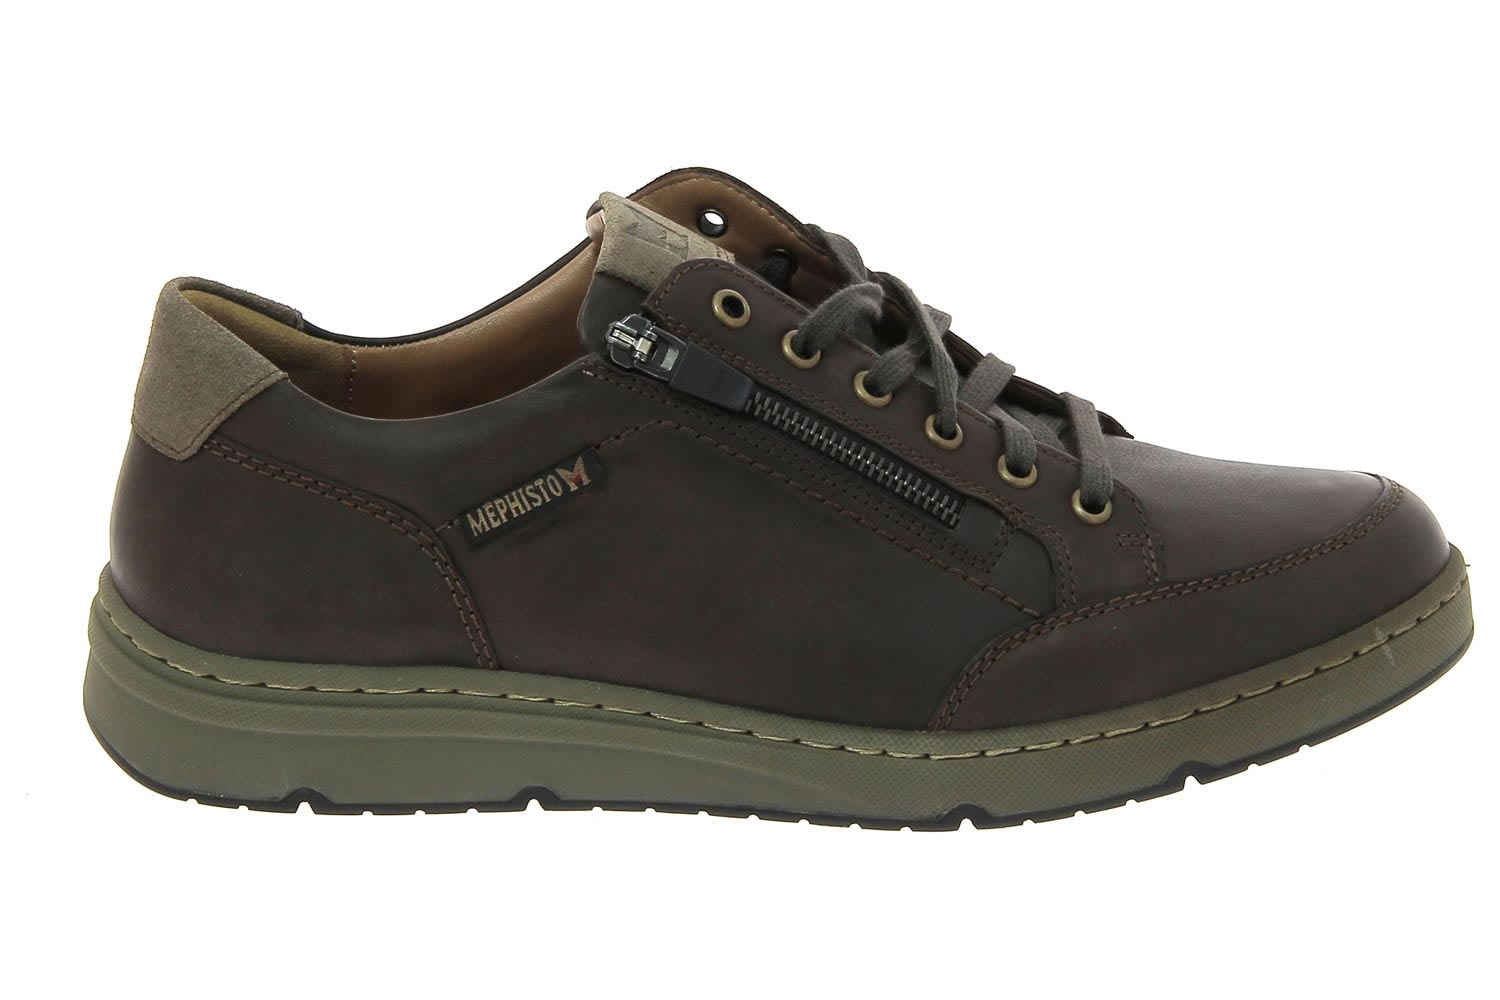 52e7bd0dc1e14f mephisto chaussures homme jeremy